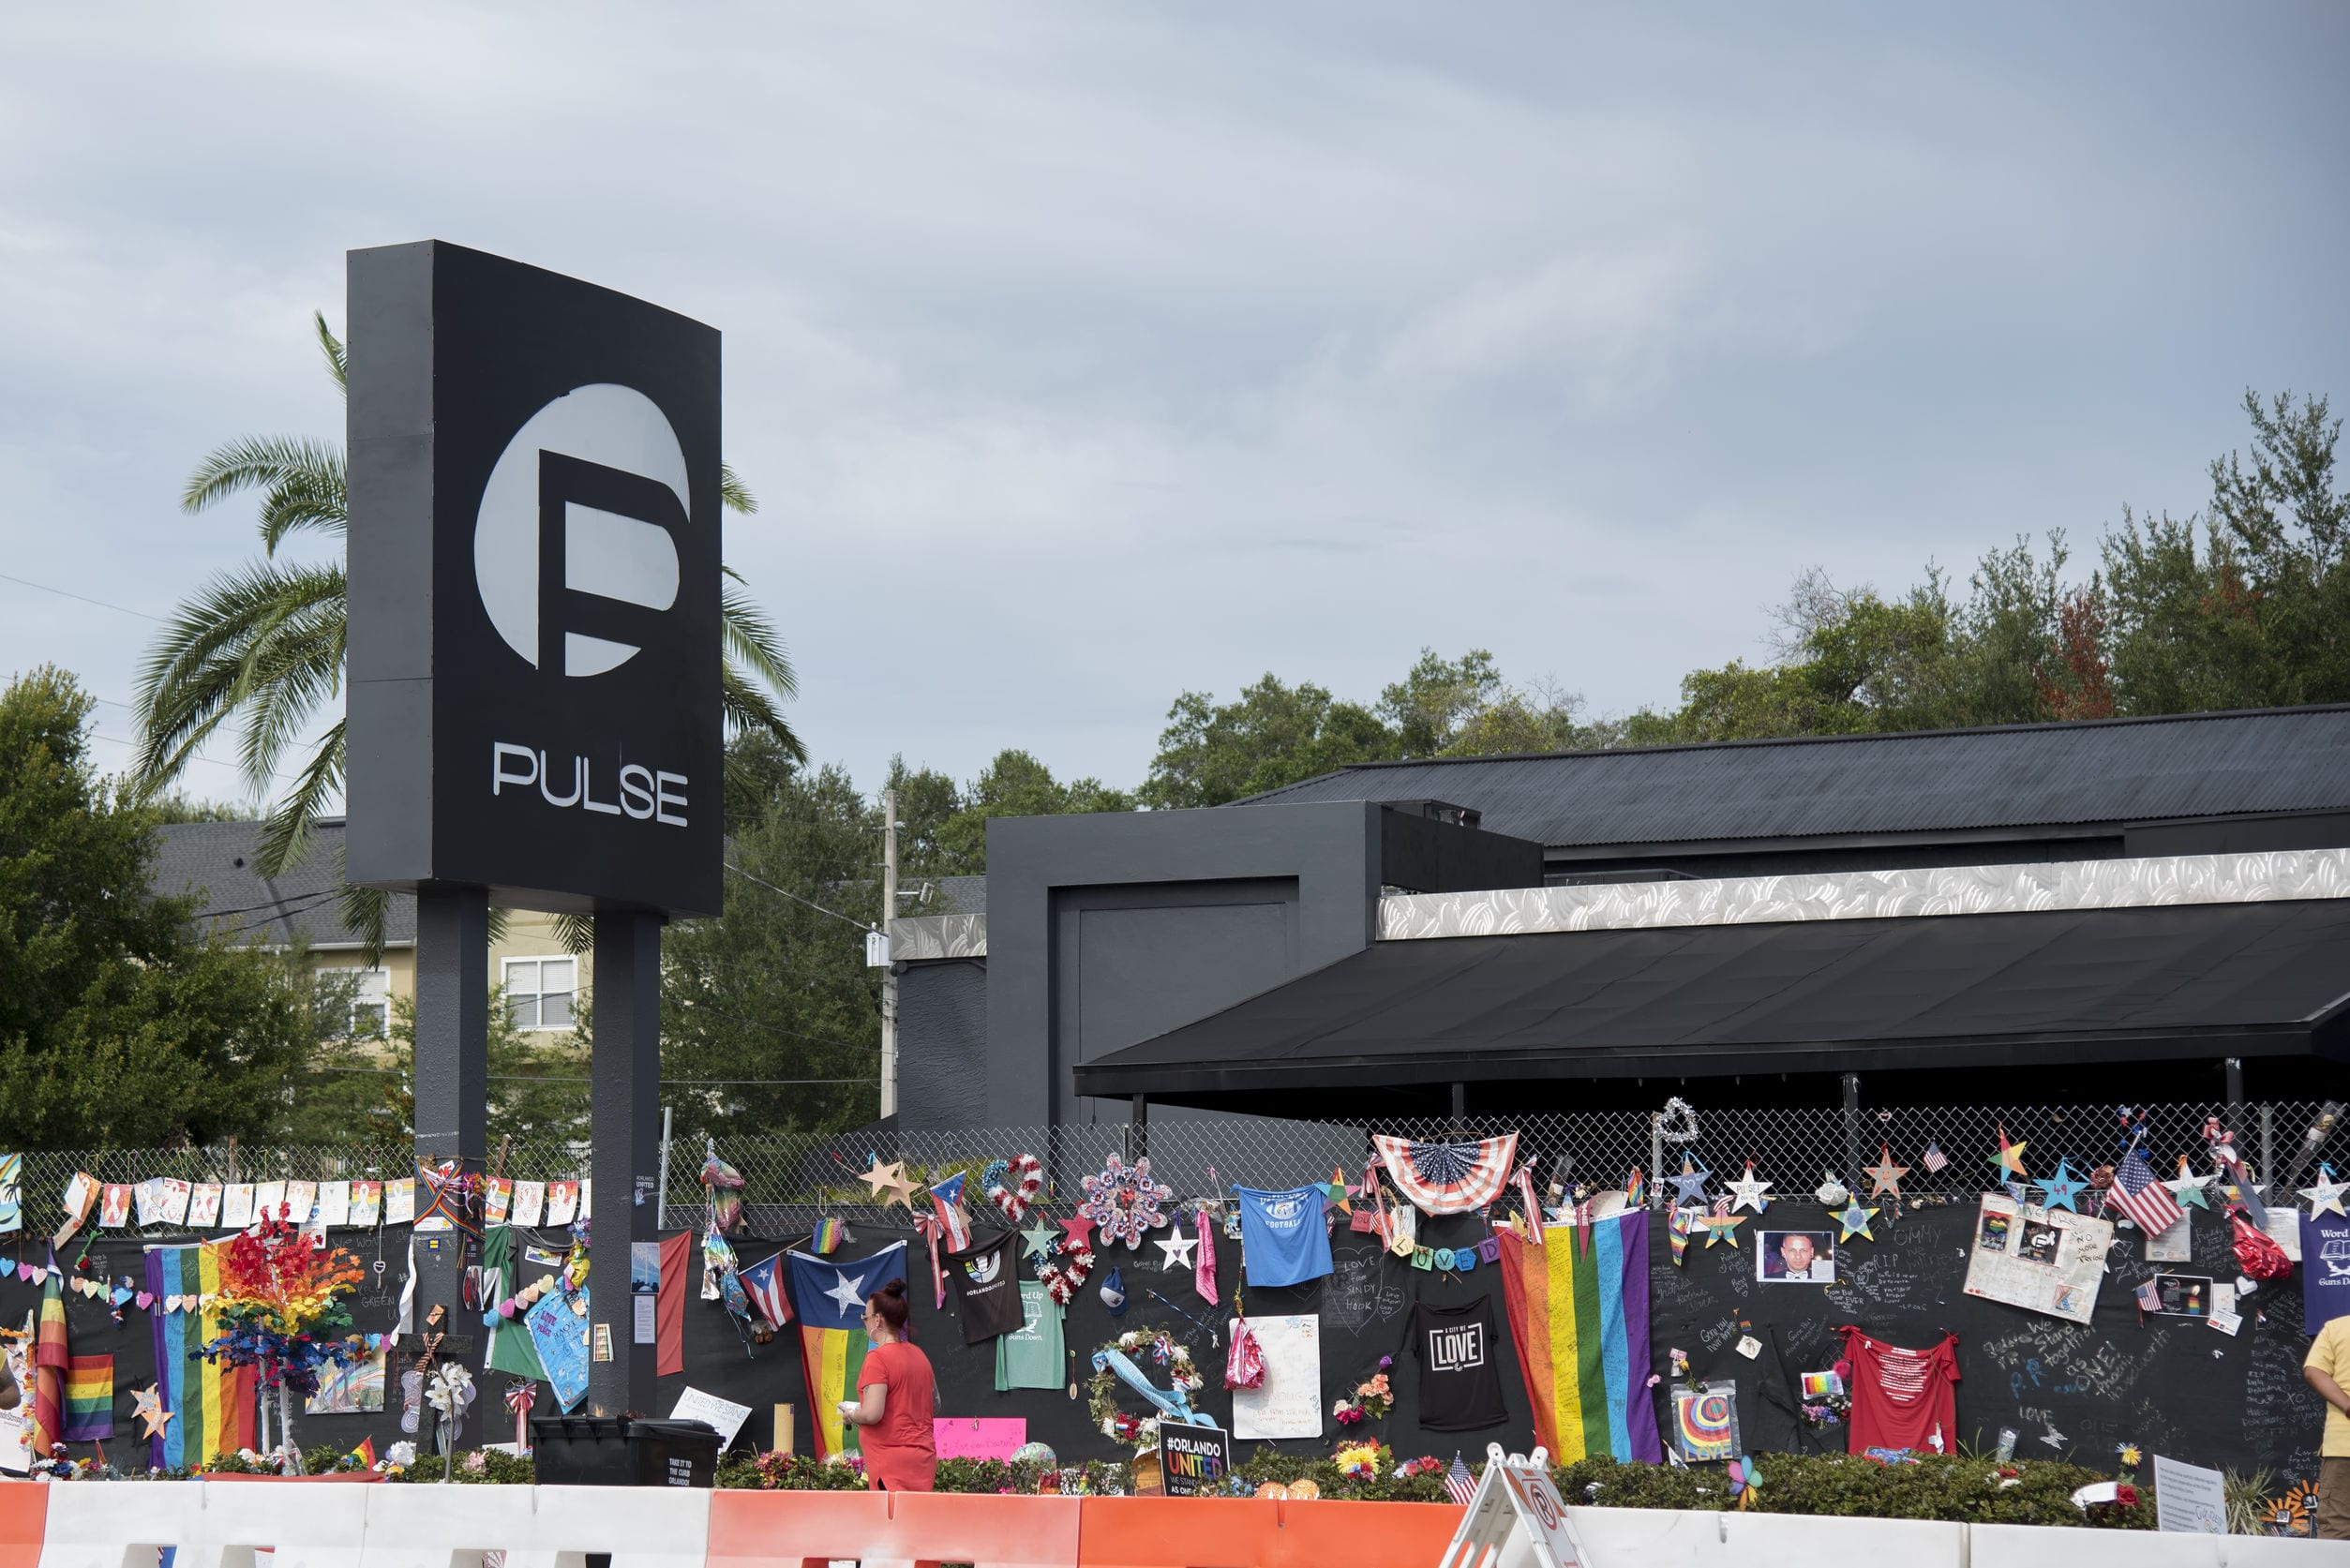 Obstruction of Justice The Pulse Nightclub Shooting